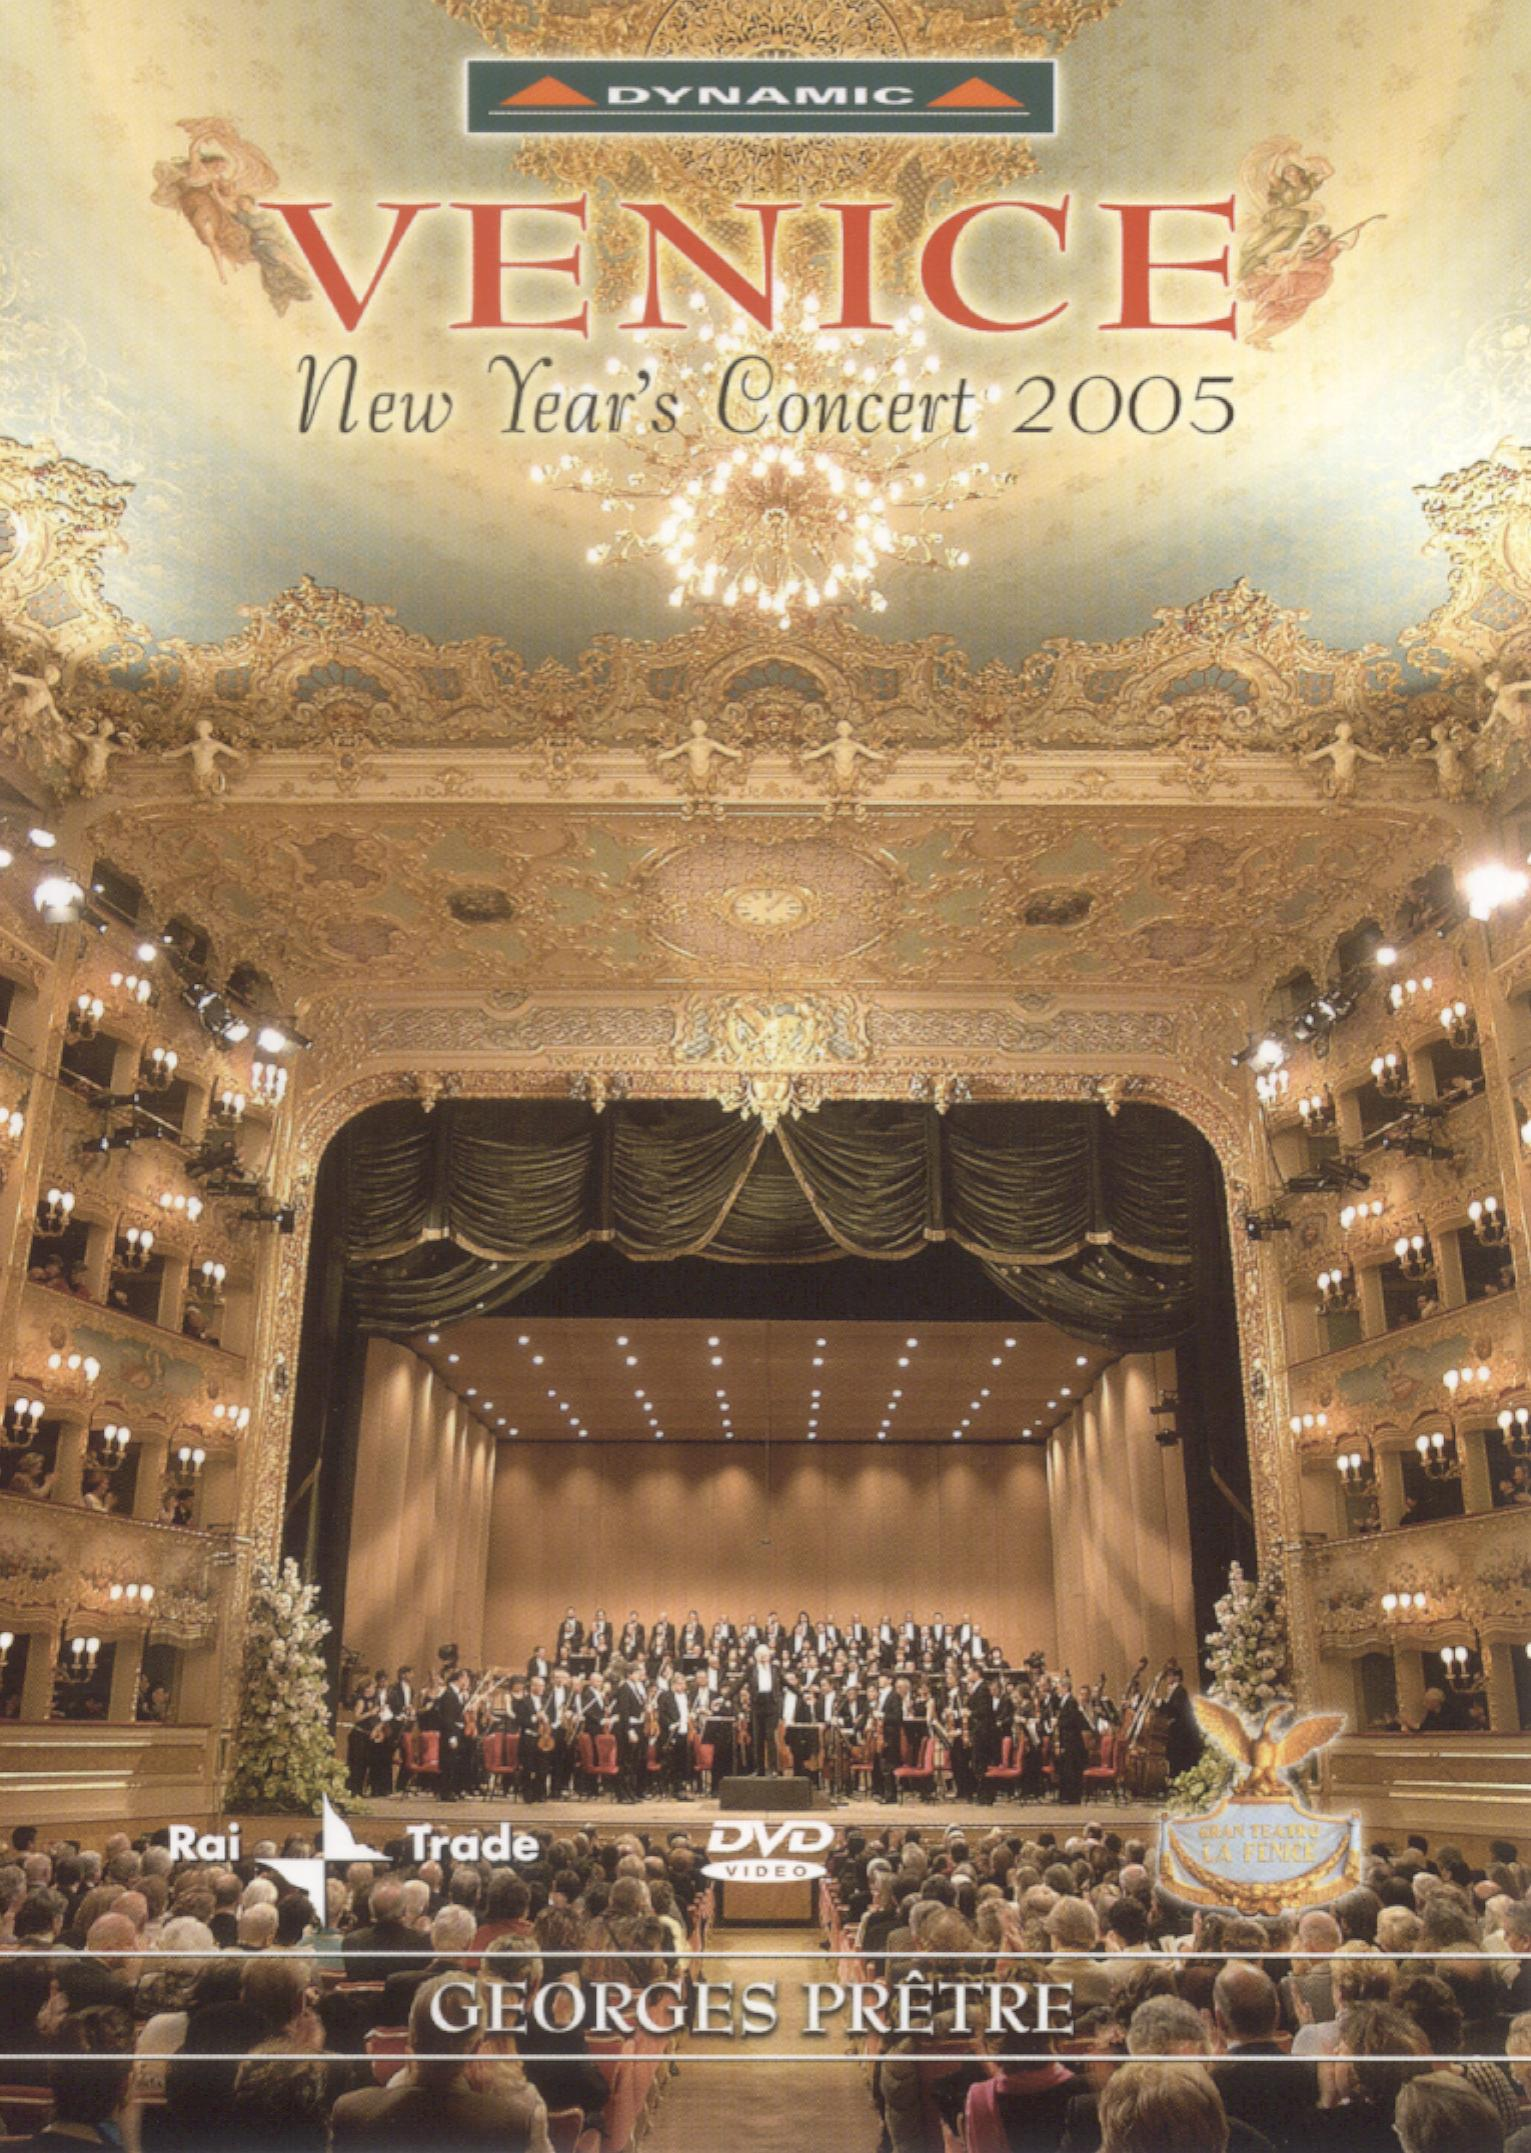 New Year's Concert 2005